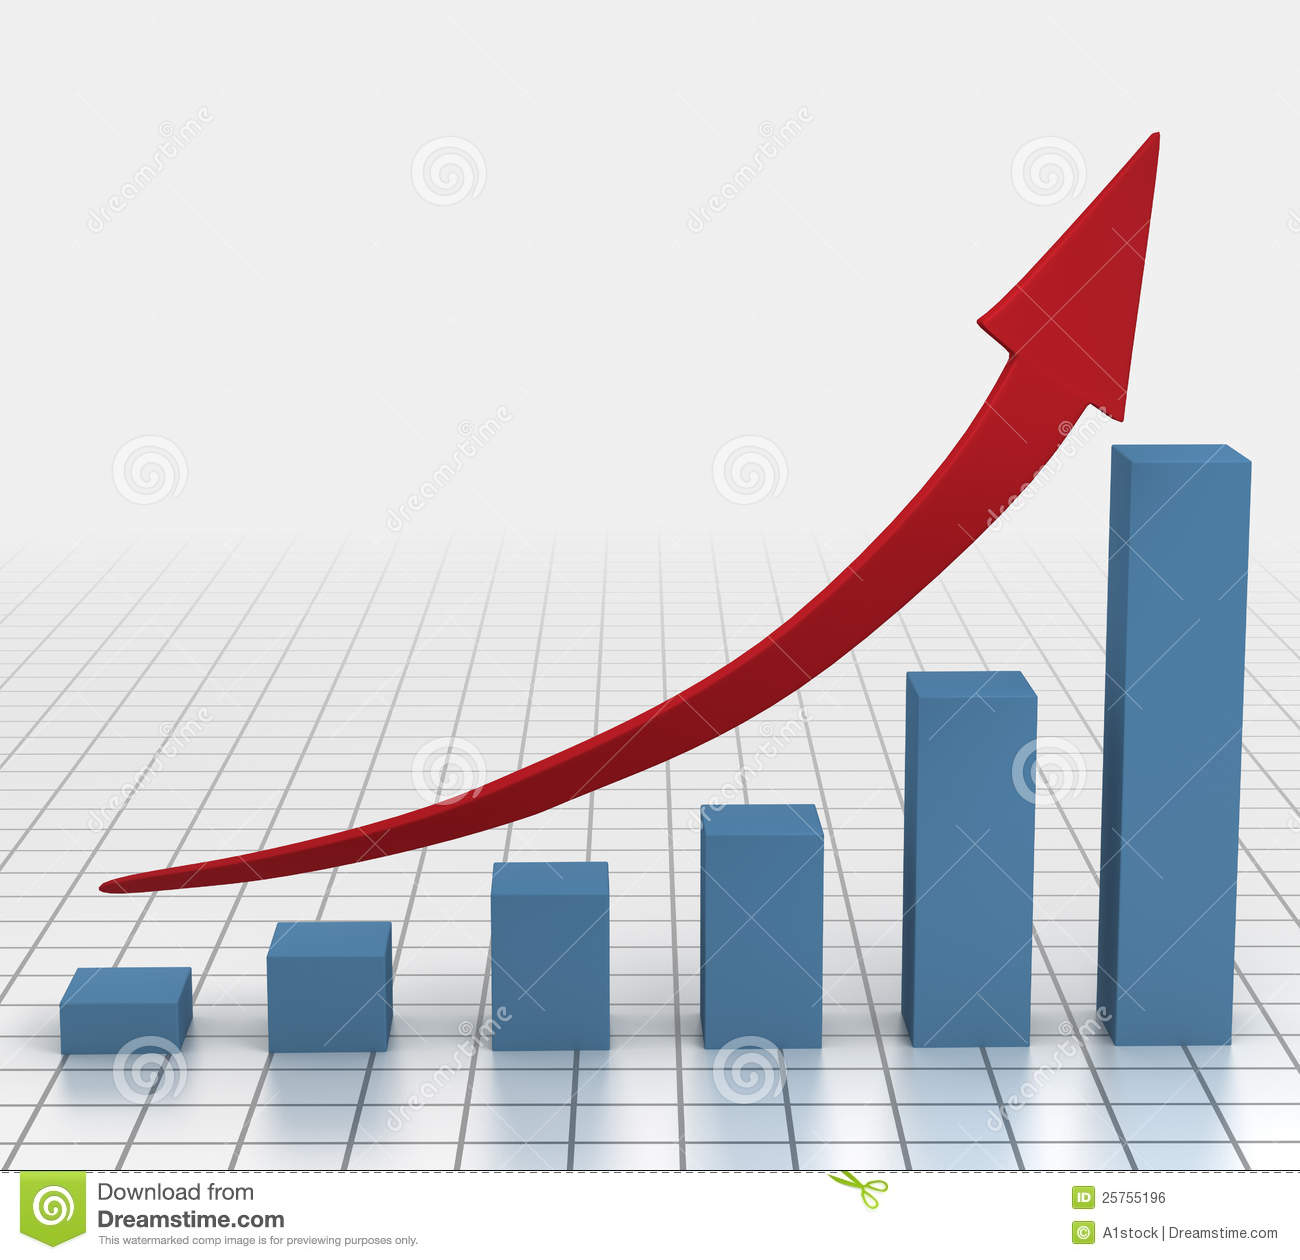 increase chart clipart